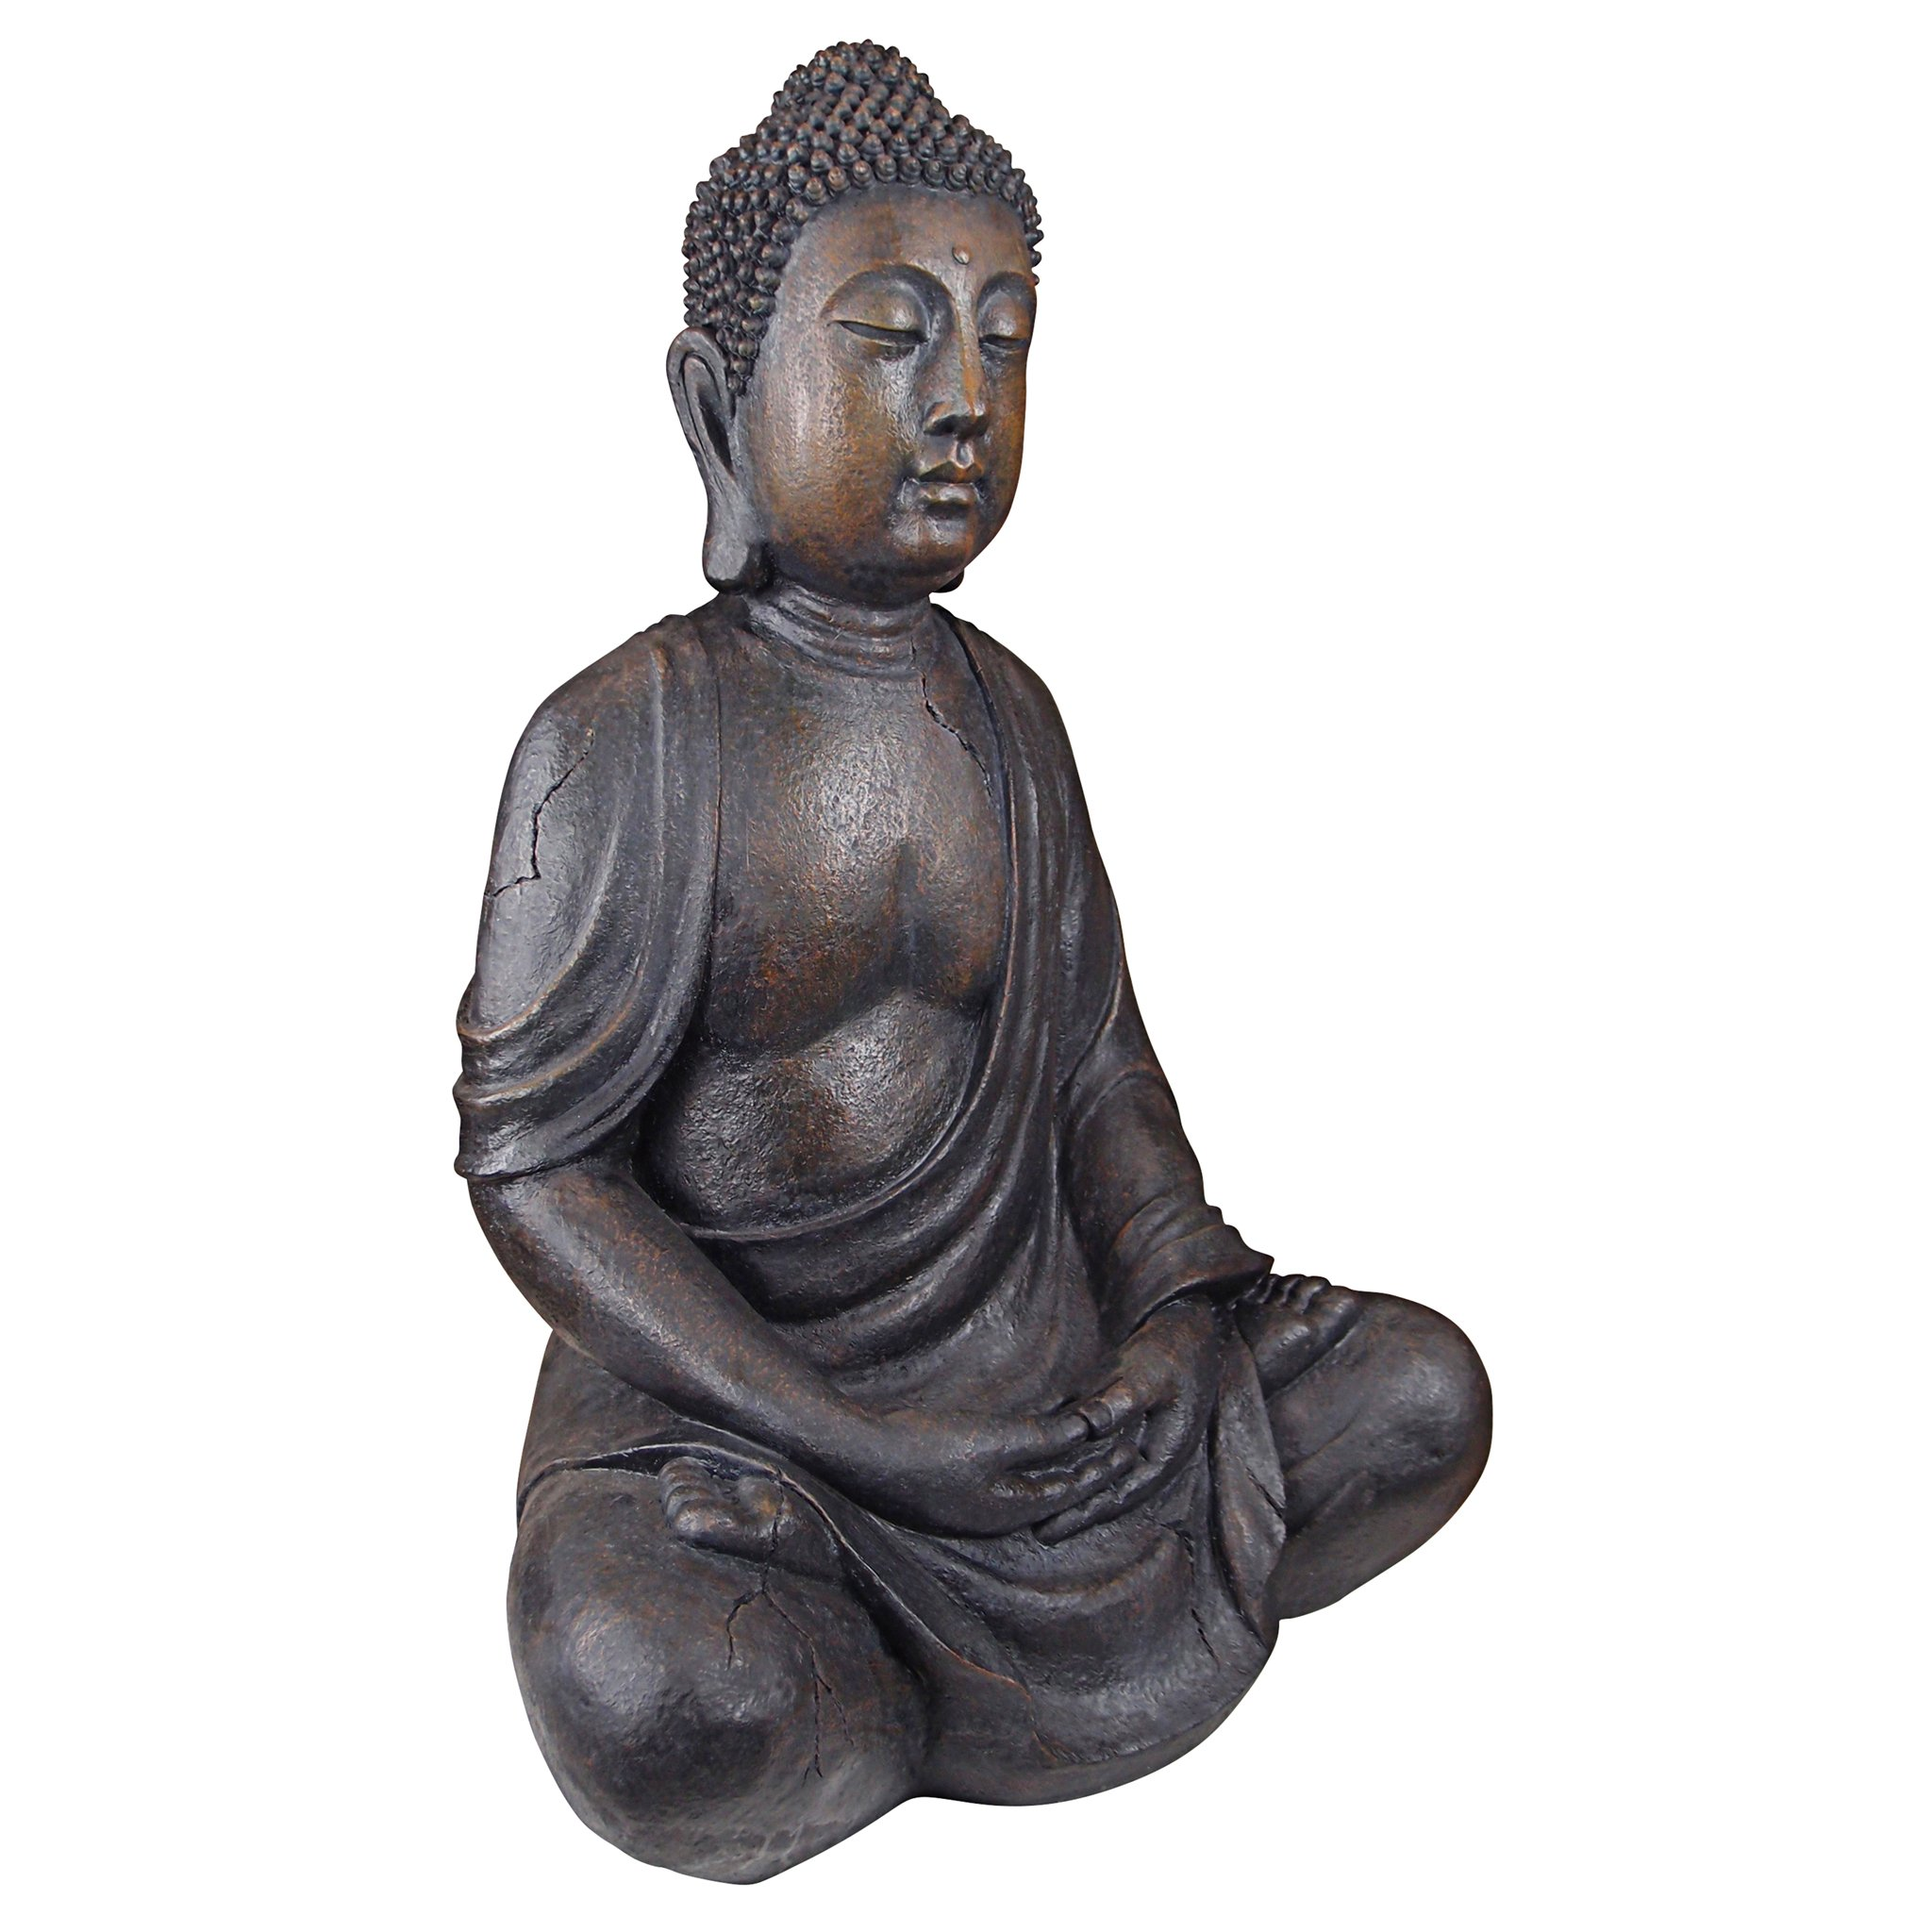 Design Toscano Meditative Buddha of the Grand Temple Large-Sized Garden Statue by Design Toscano